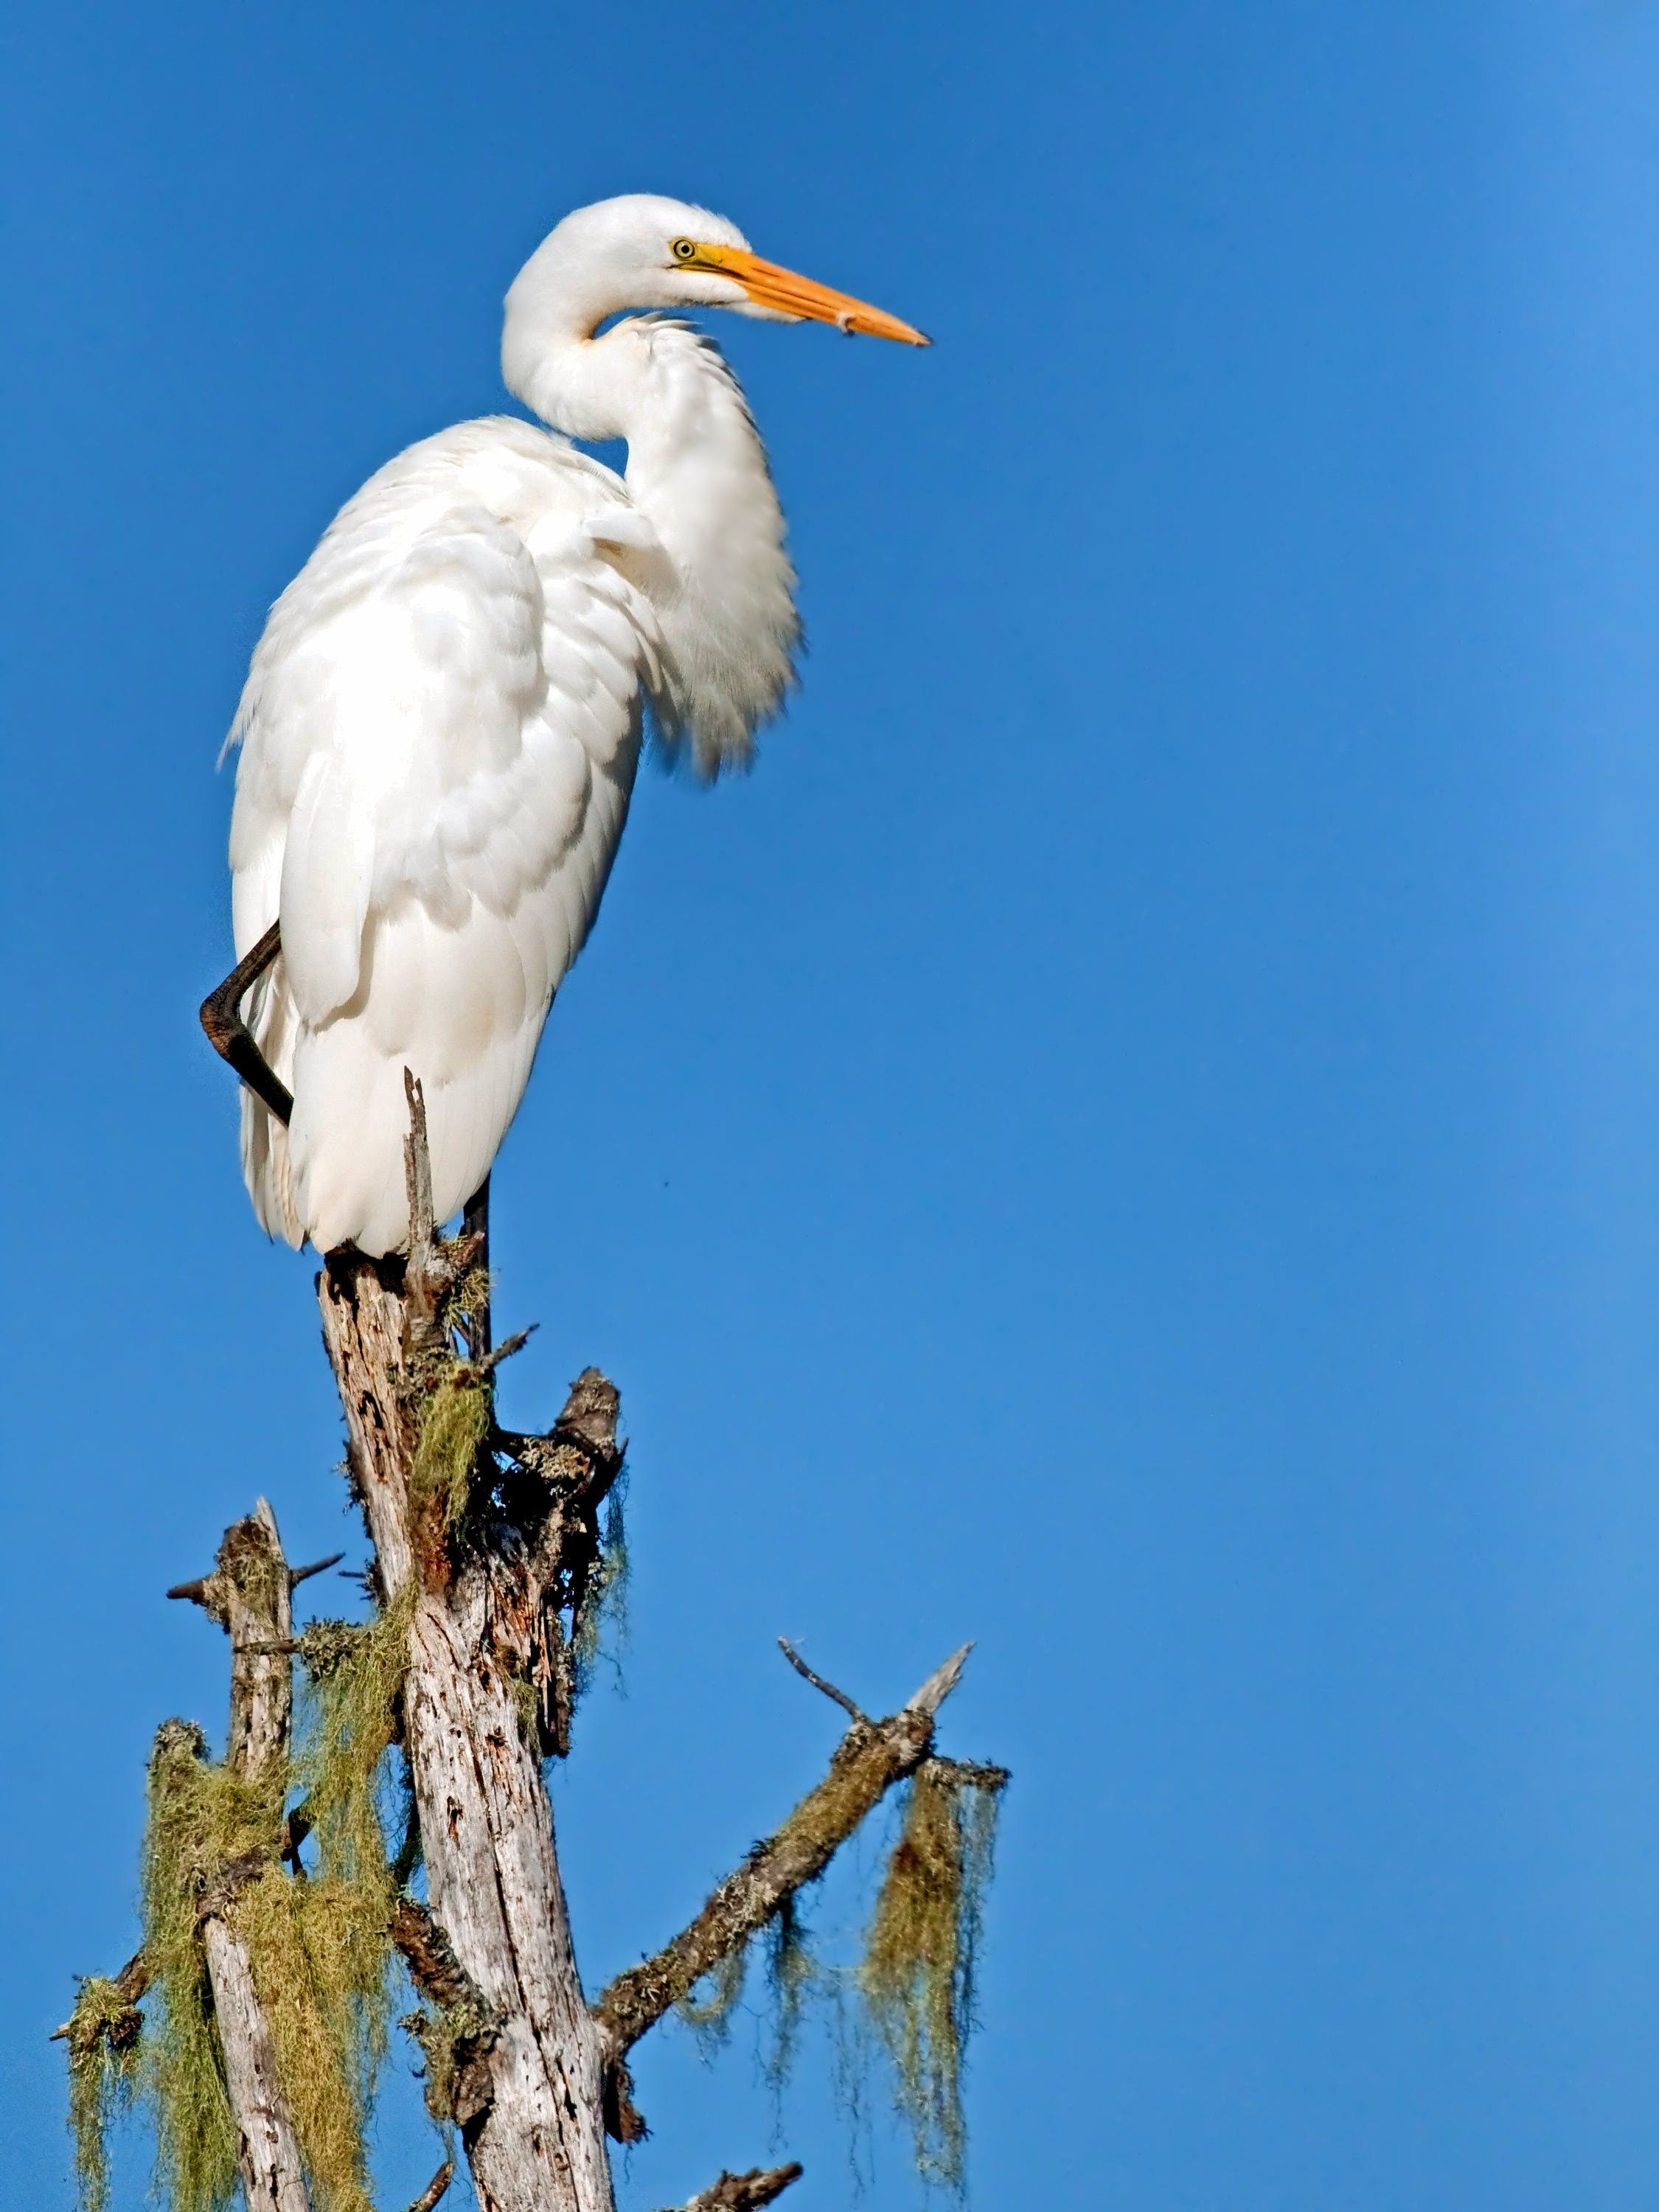 White Bird Perching on Brown Tree Trunk during Daytime